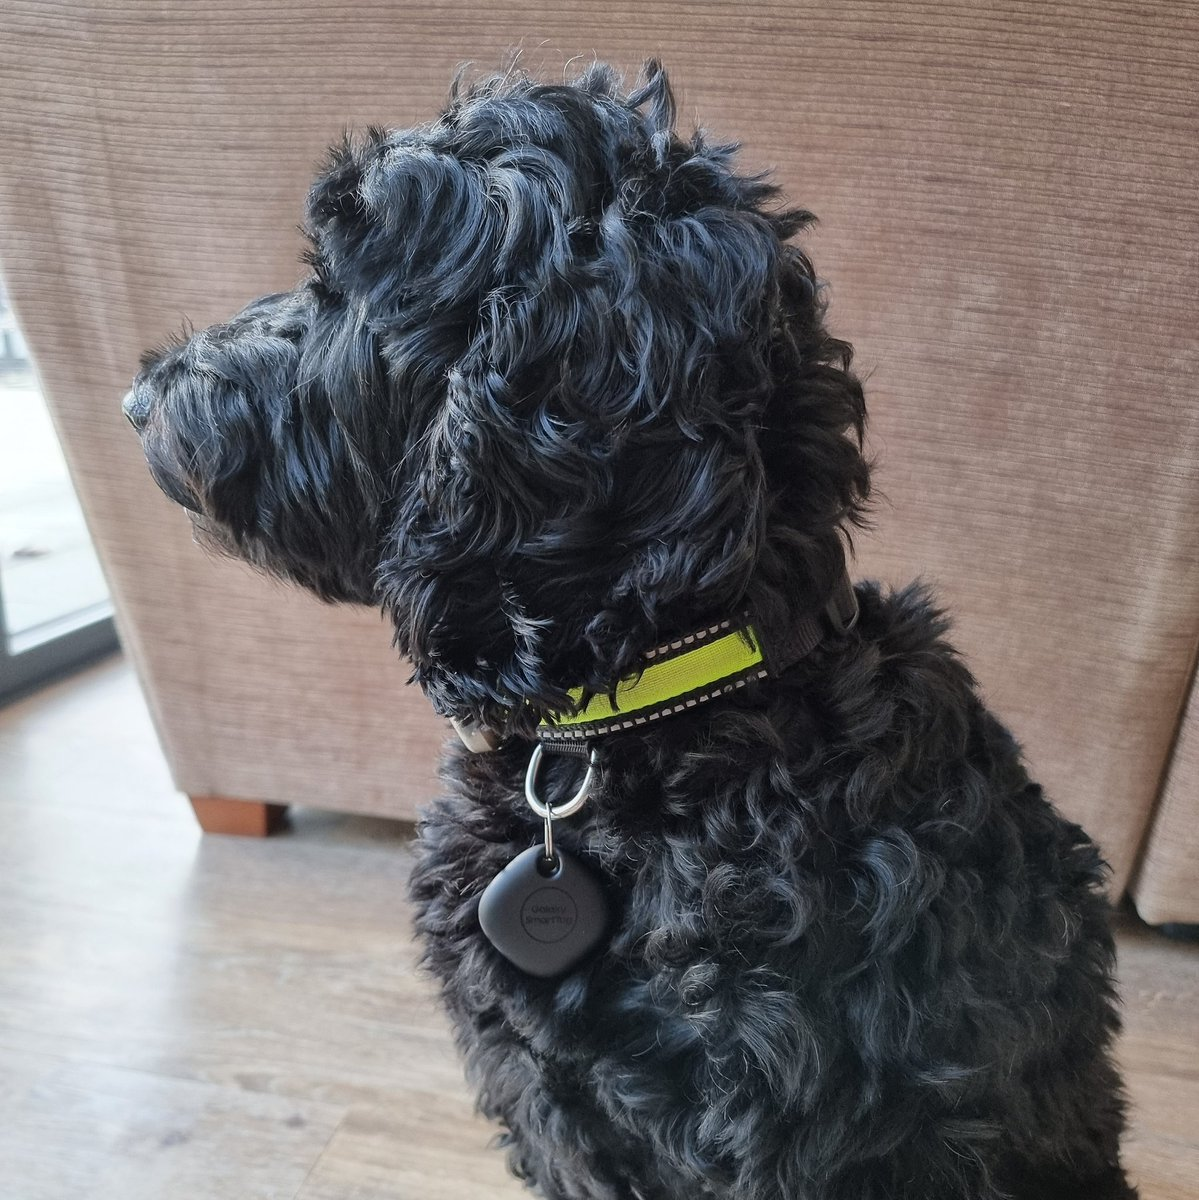 Have deployed the @SamsungMobile #GalaxySmartTag on Beano dog. Intrigued to see if the tracker is picked up by the @SmartThings 'mesh network' of existing Galaxy devices. #PetTech